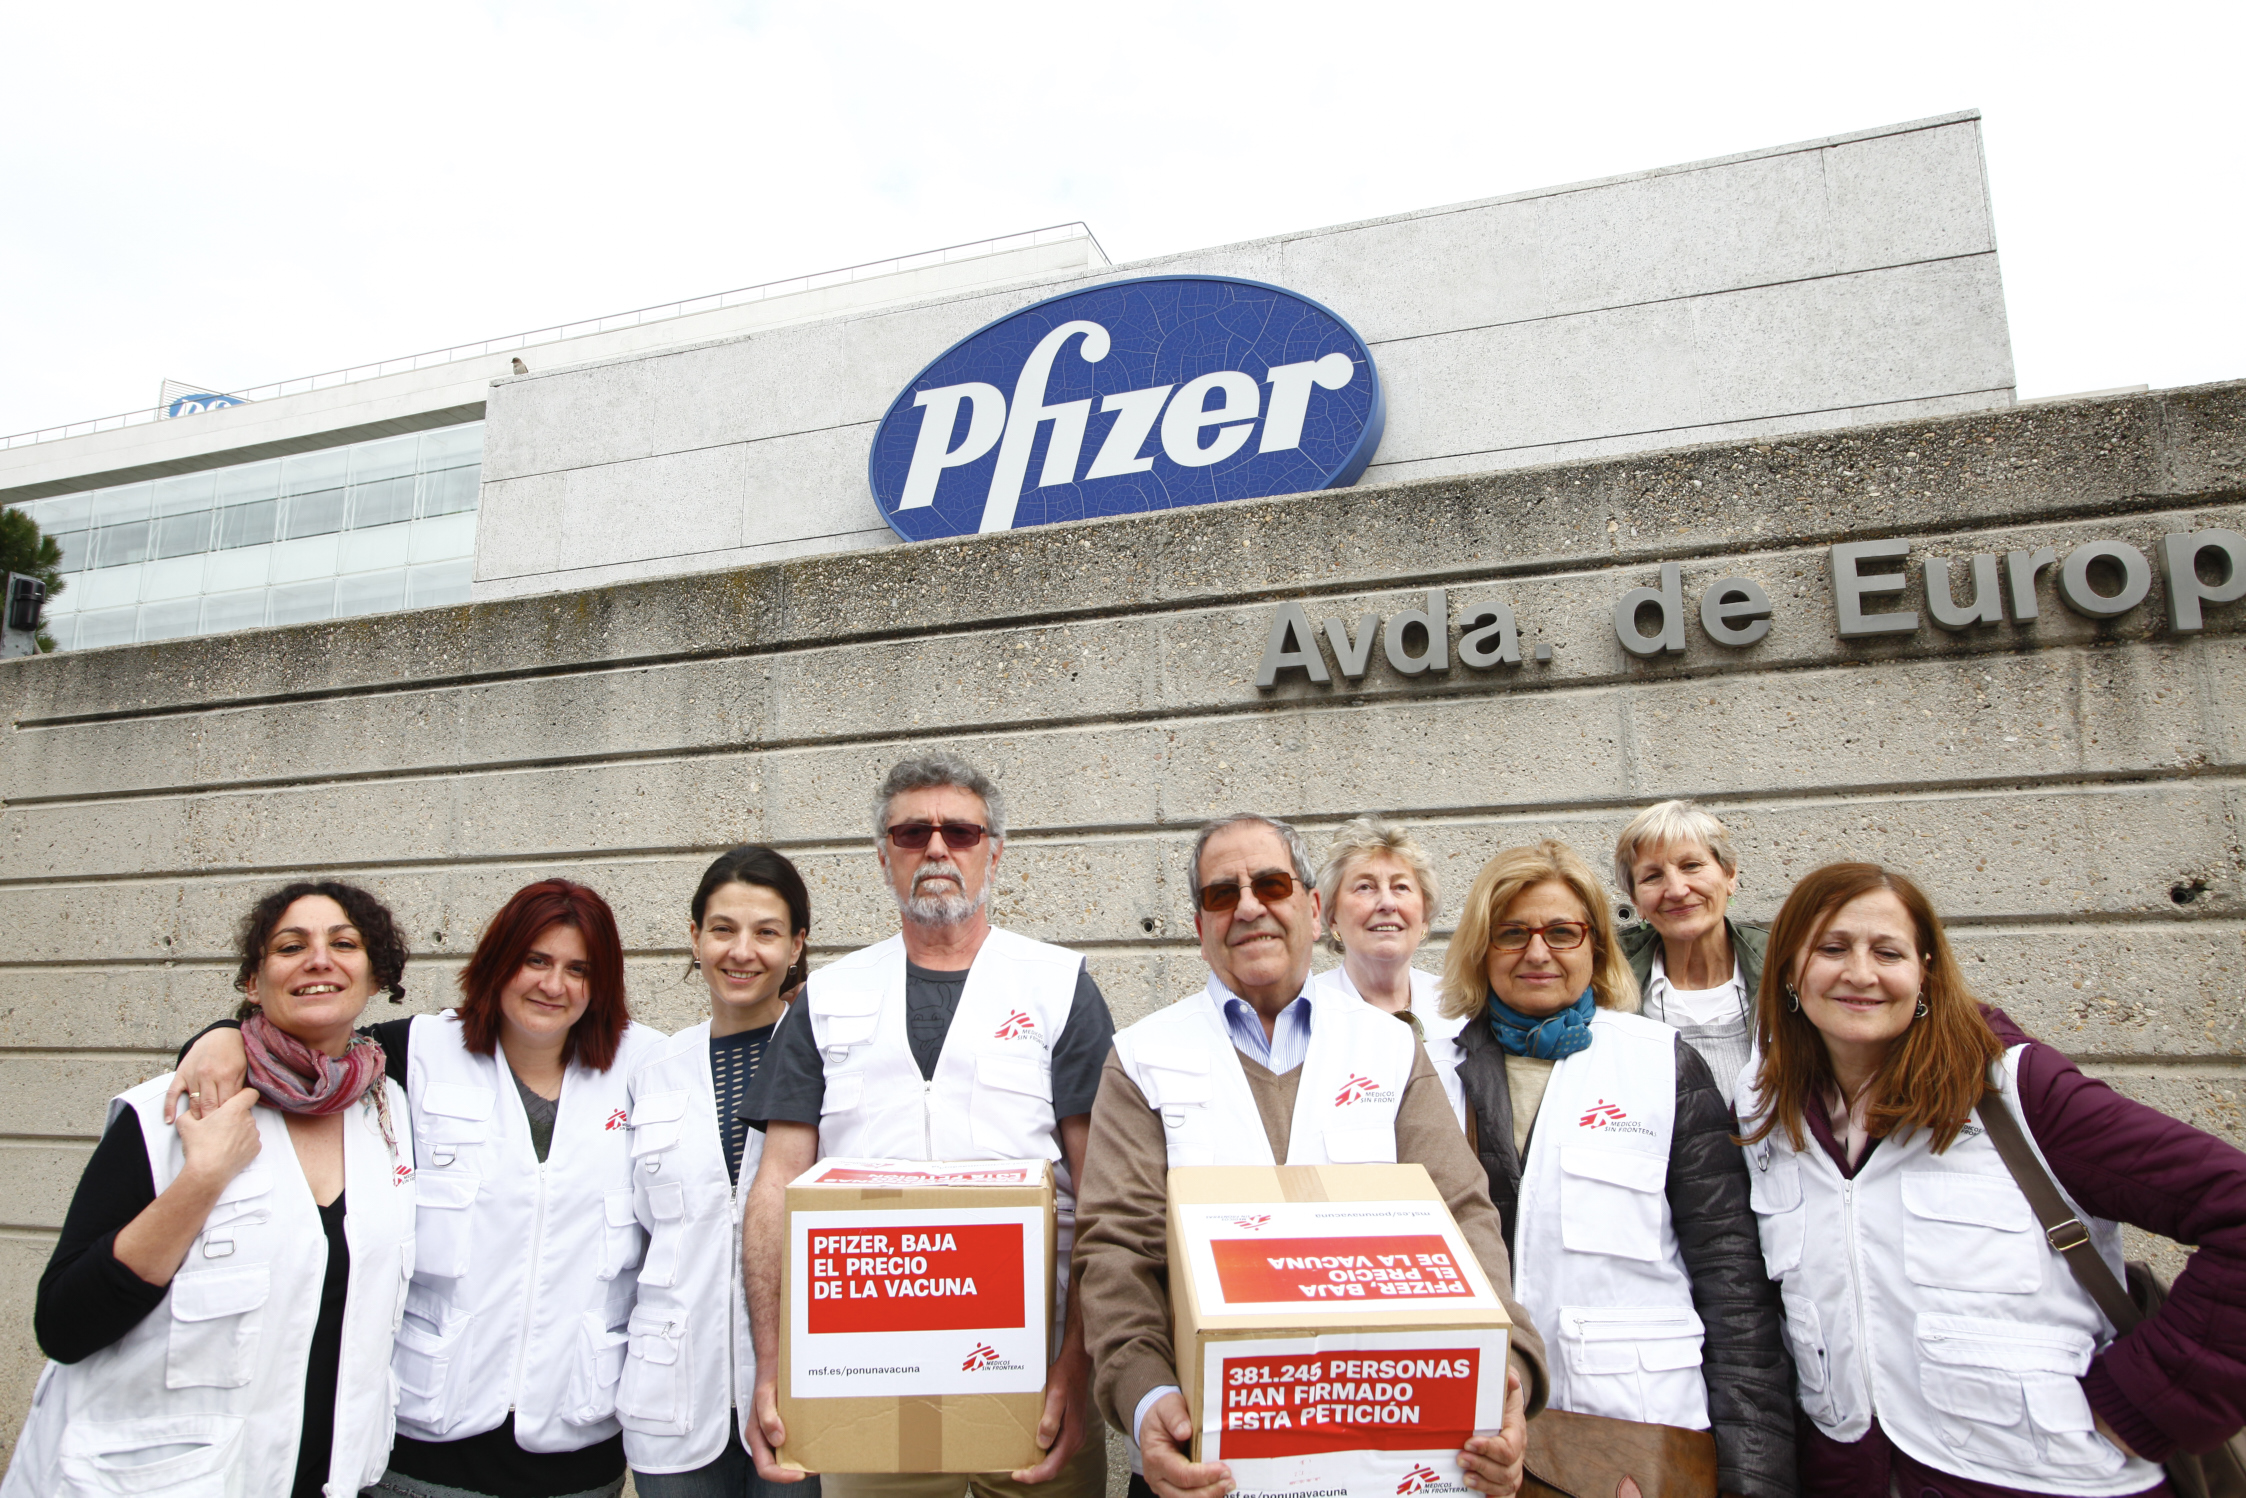 Doctors Without Borders delivers petition signatures to Pfizer in Madrid.